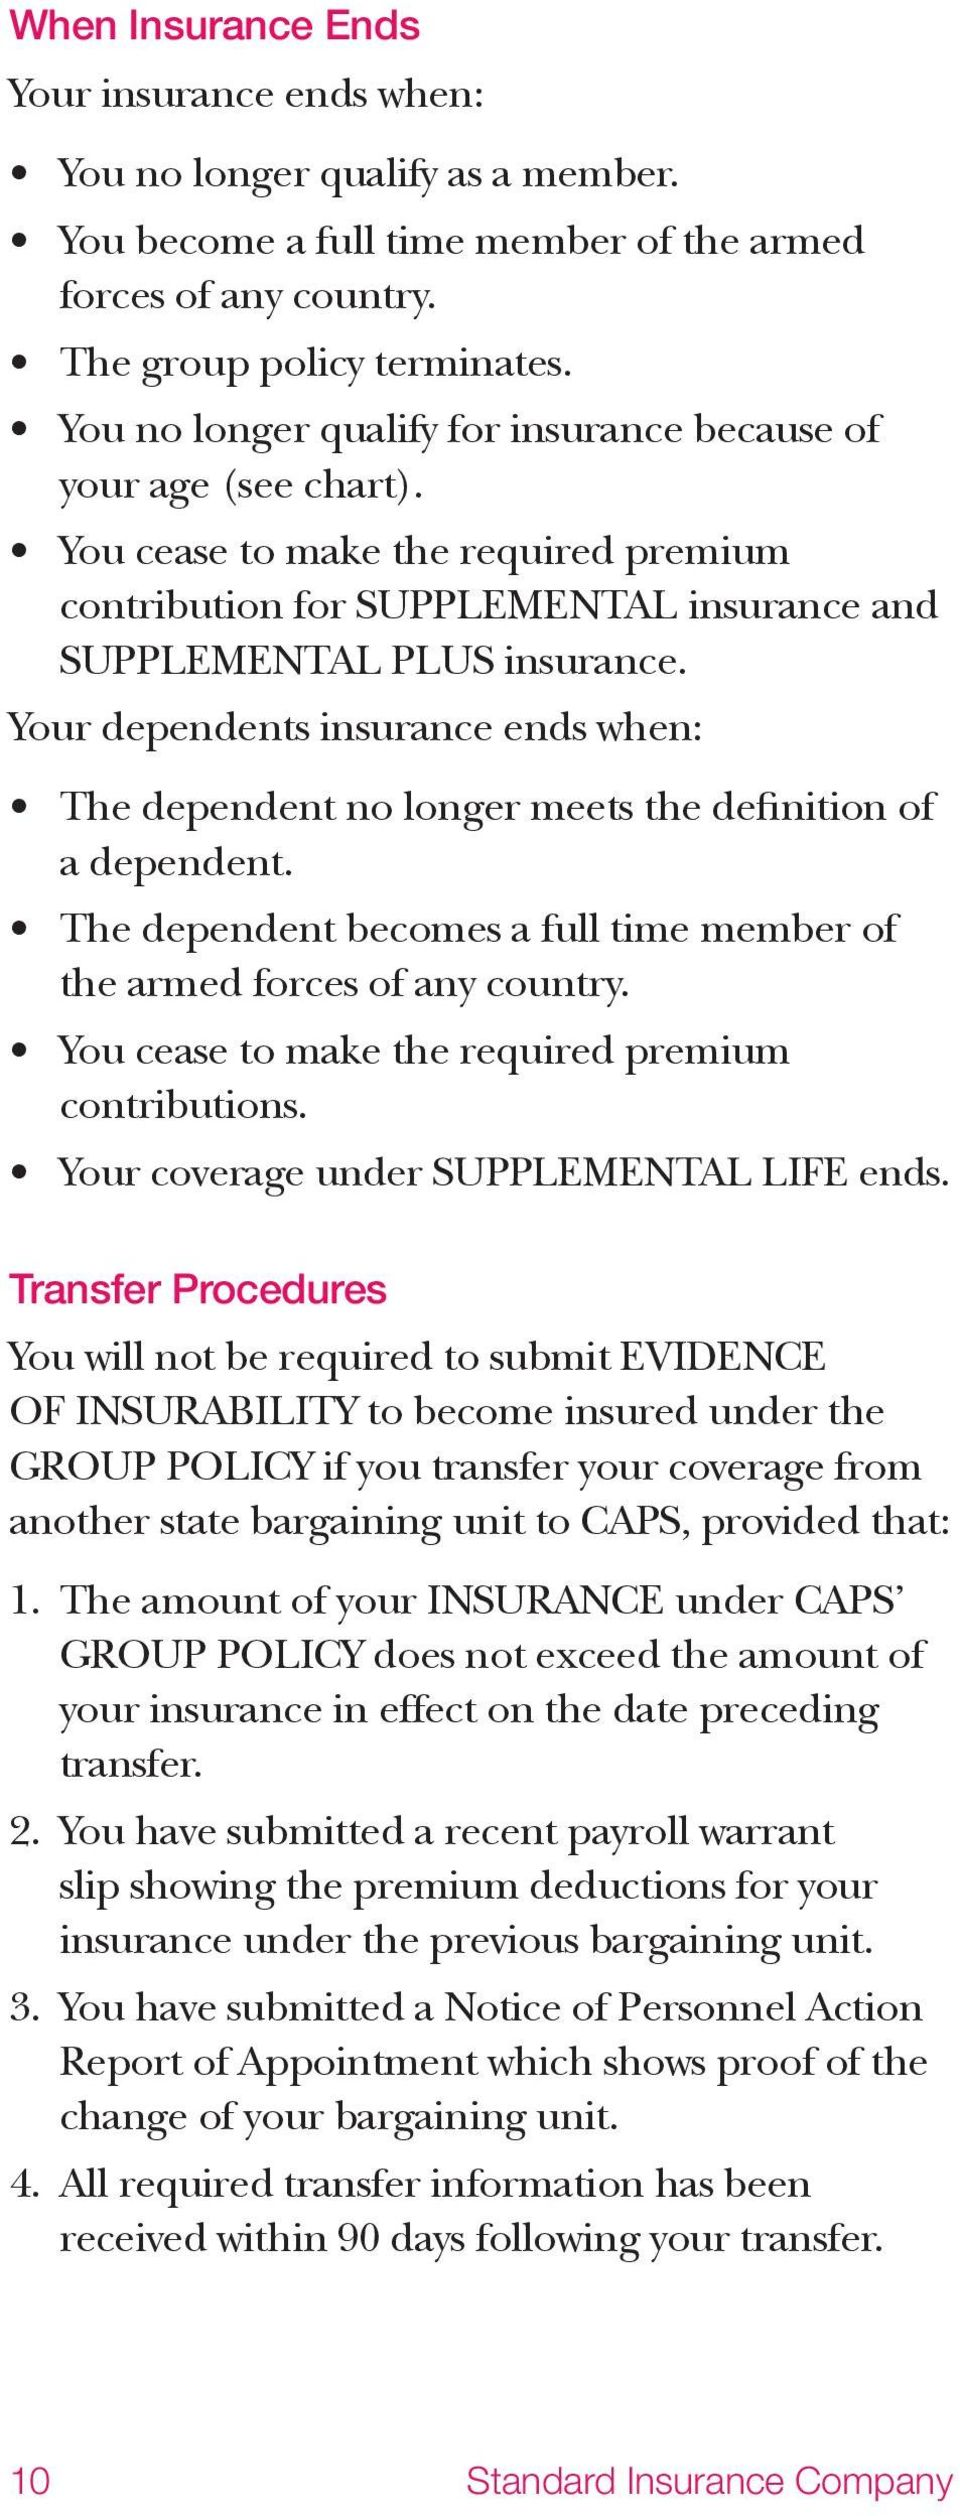 Your dependents insurance ends when: The dependent no longer meets the definition of a dependent. The dependent becomes a full time member of the armed forces of any country.